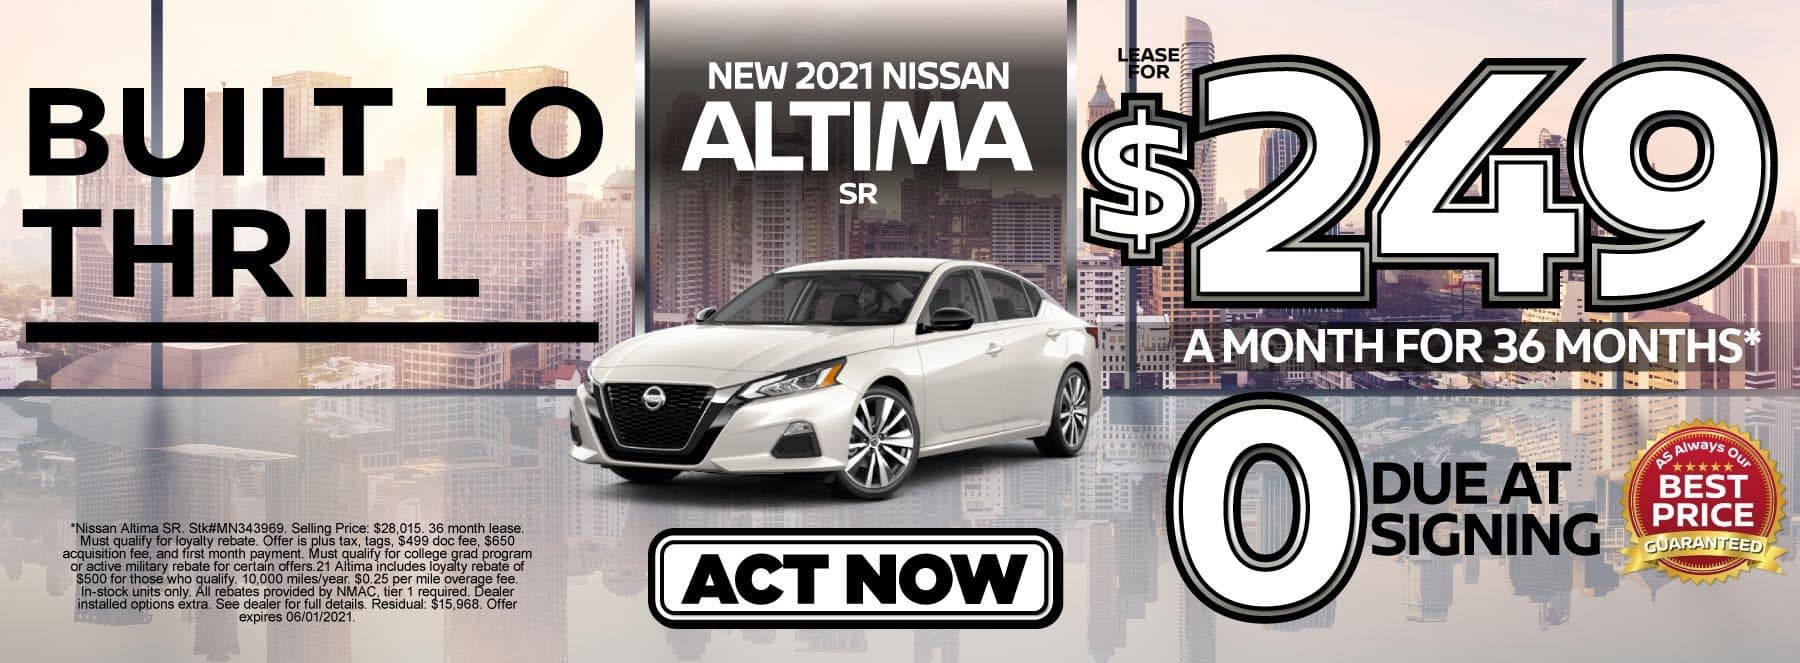 New 2021 Nissan Altima lease for $249 a month | Act Now